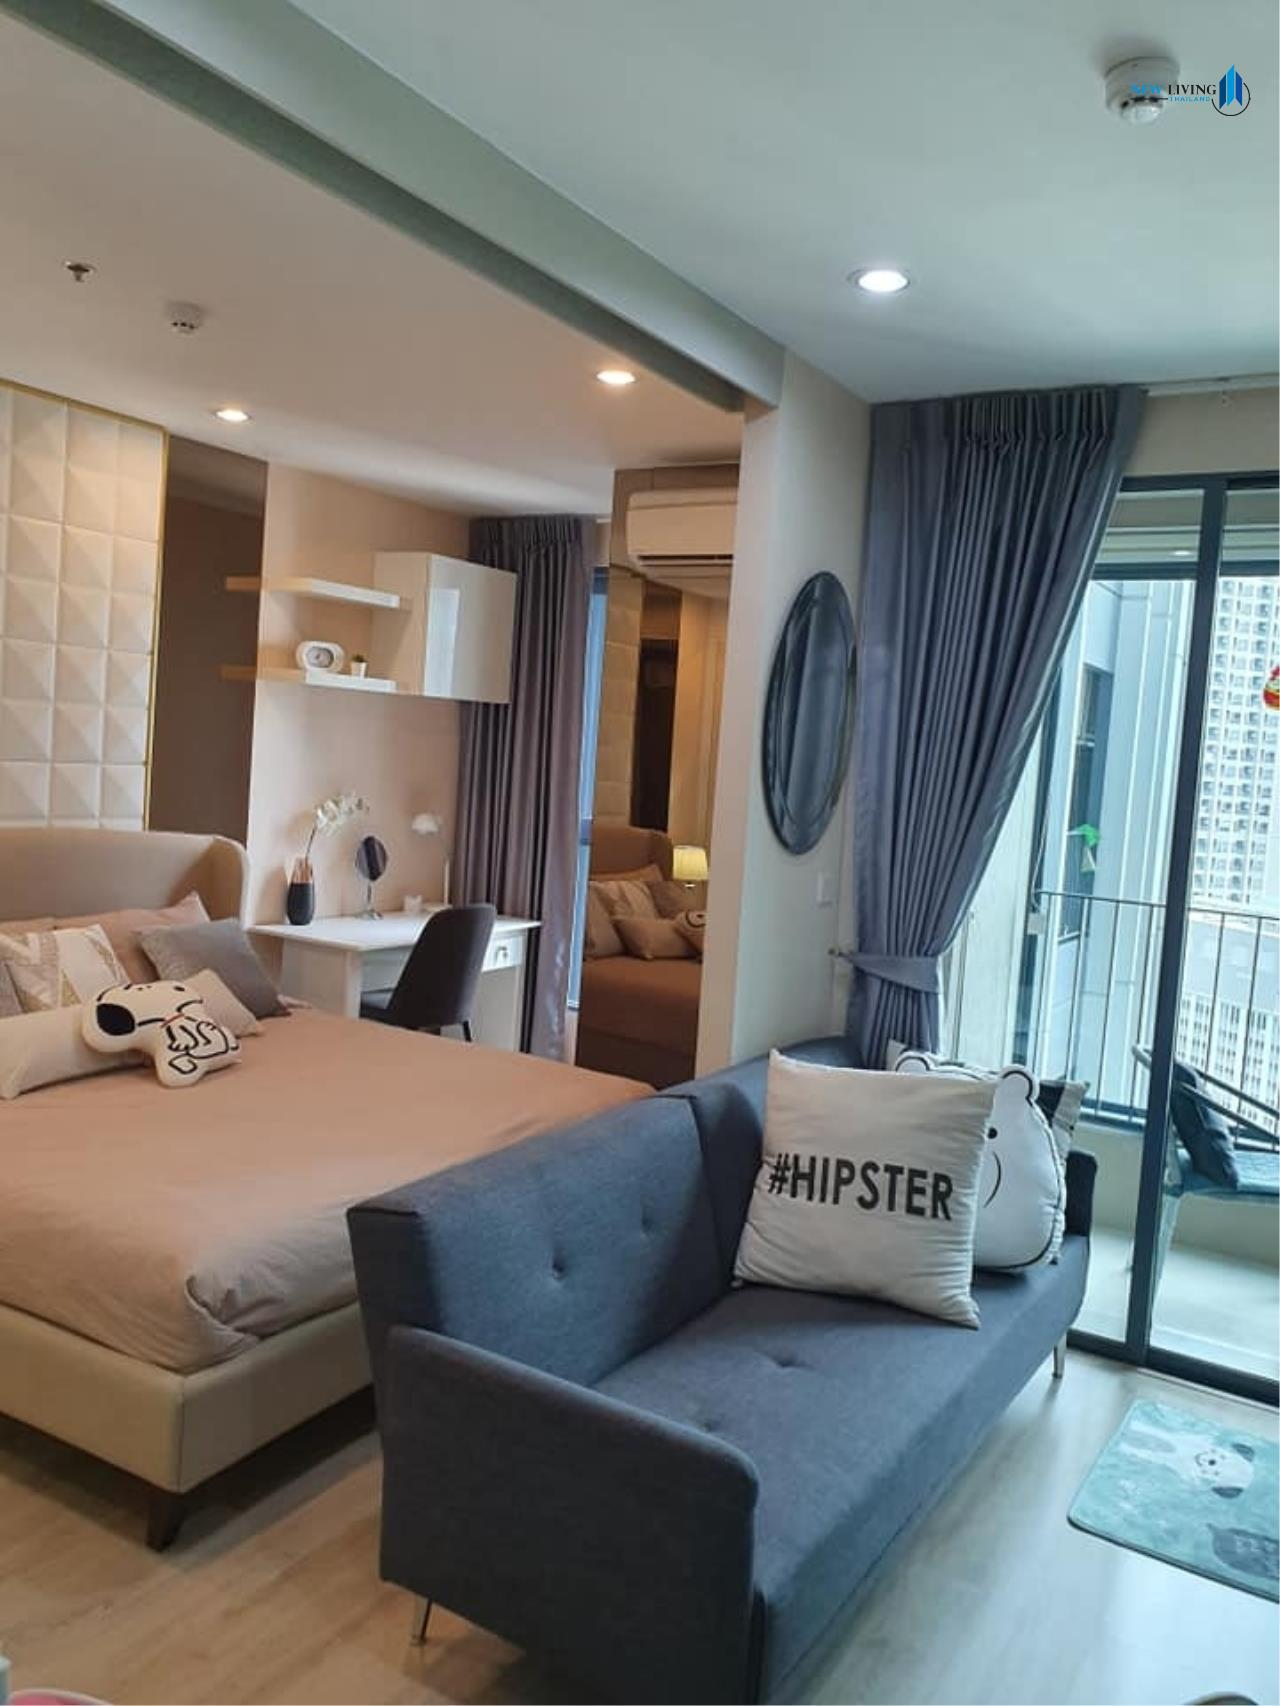 New Living Thailand Agency's +++ Urgent rent !! +++ Ideo Q Chula Samyan, fully furnished 1 bedroom , 33 sq.m.,+++ 3